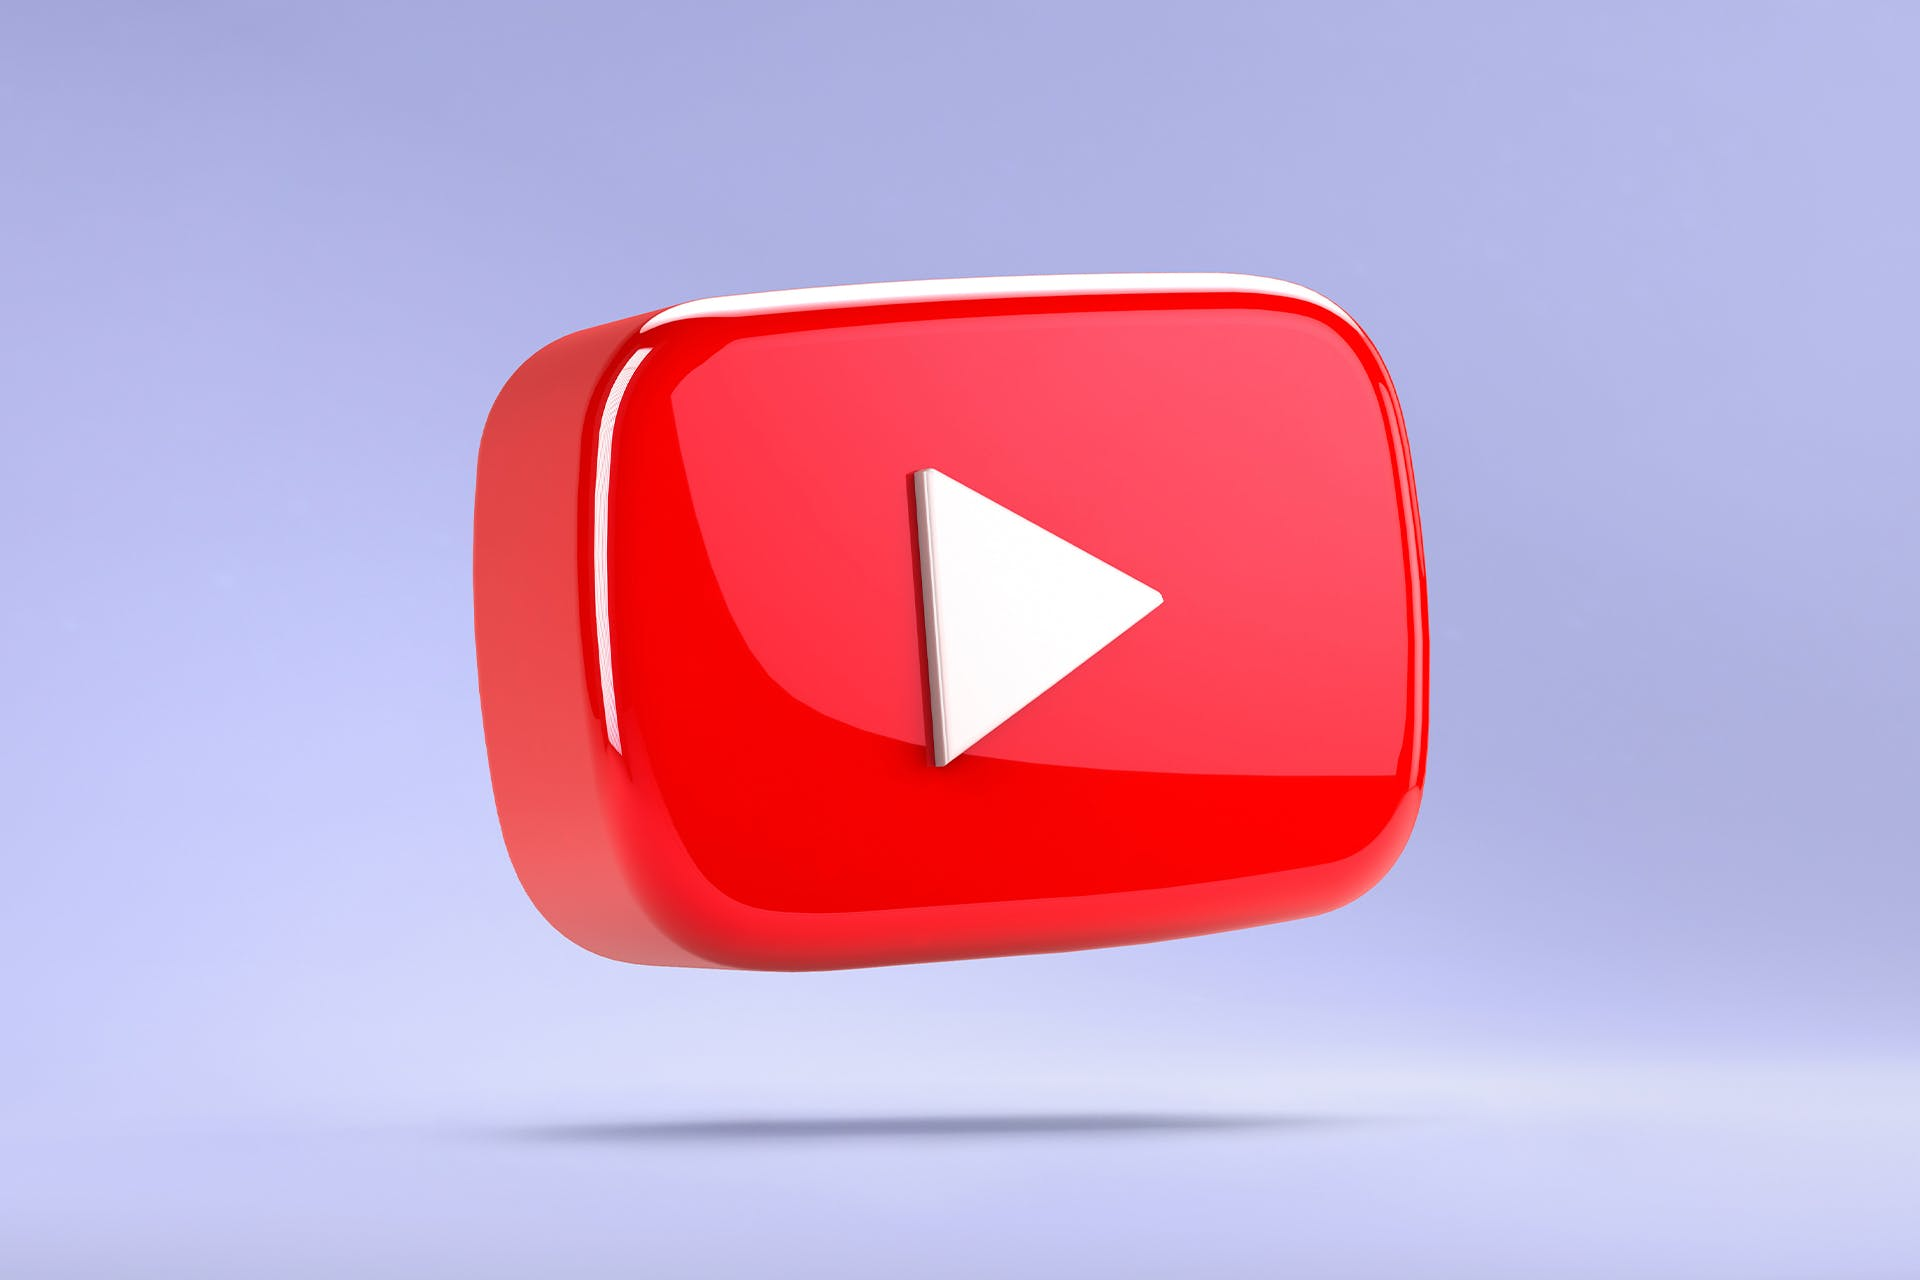 An illustrated image of a video play icon that appears as a red cube with a white triangle in the center. If you are marketing on YouTube, you want your subscribers to be clicking on this video icon player on the platform.